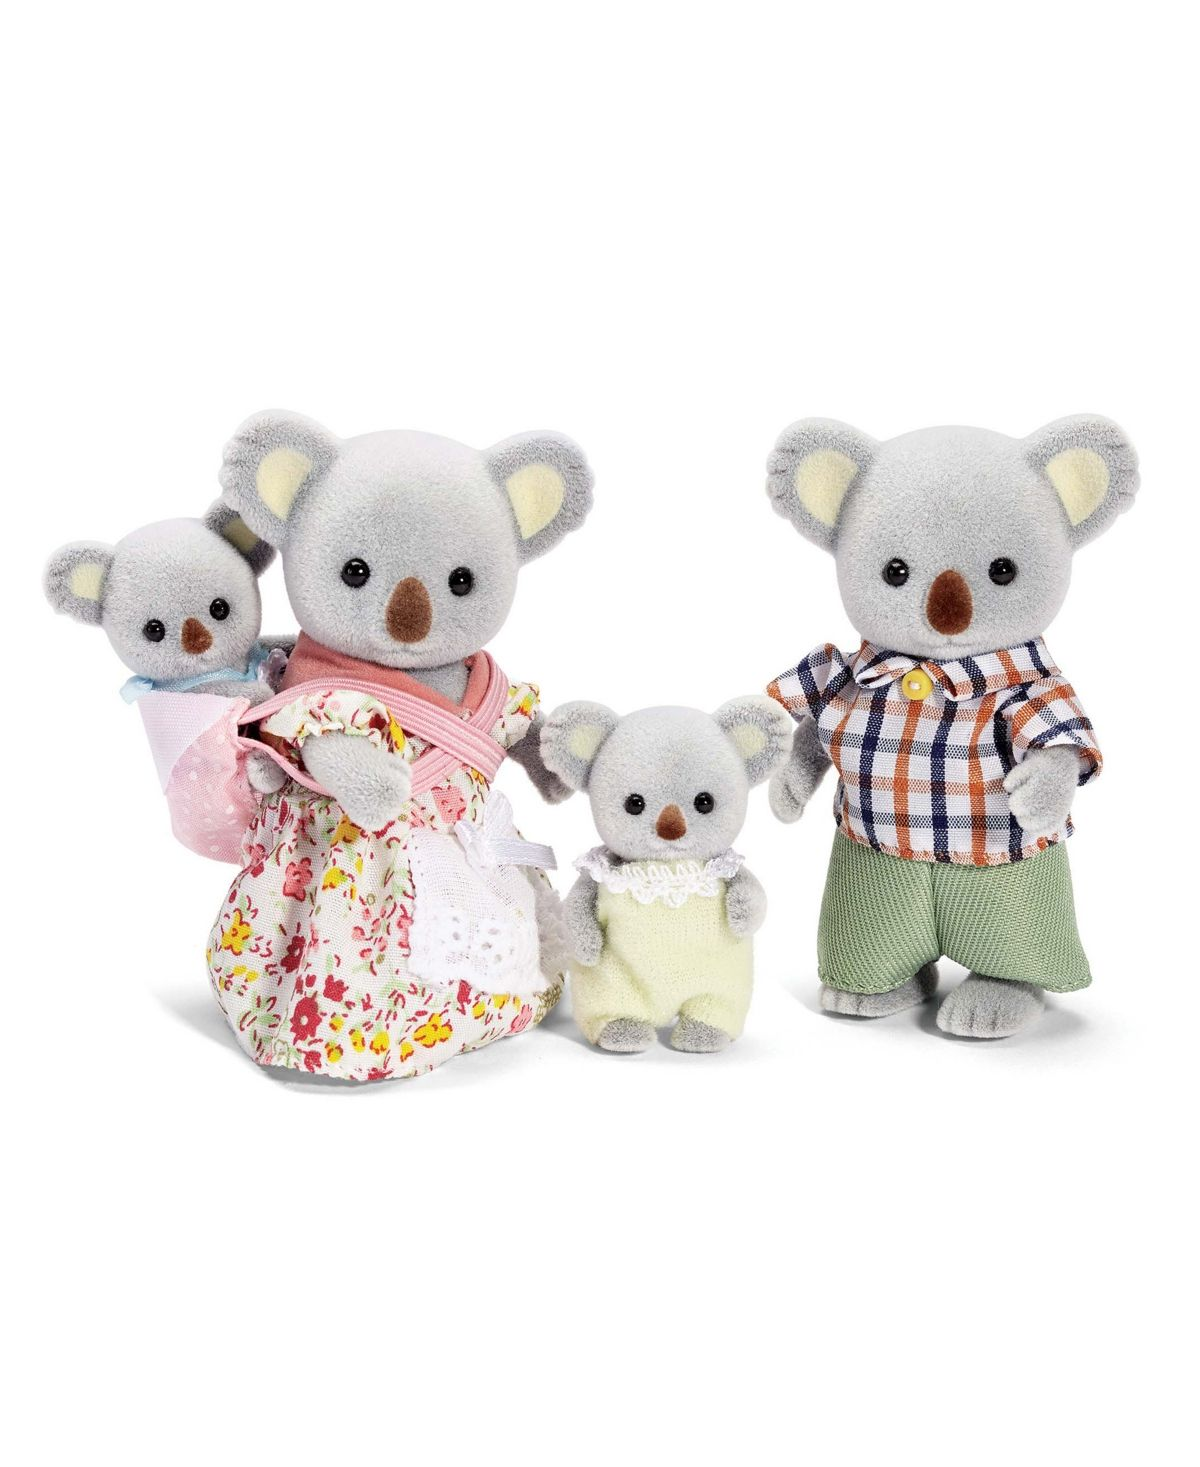 Epoch Calico Critters Families doll Persian cat family FS-28